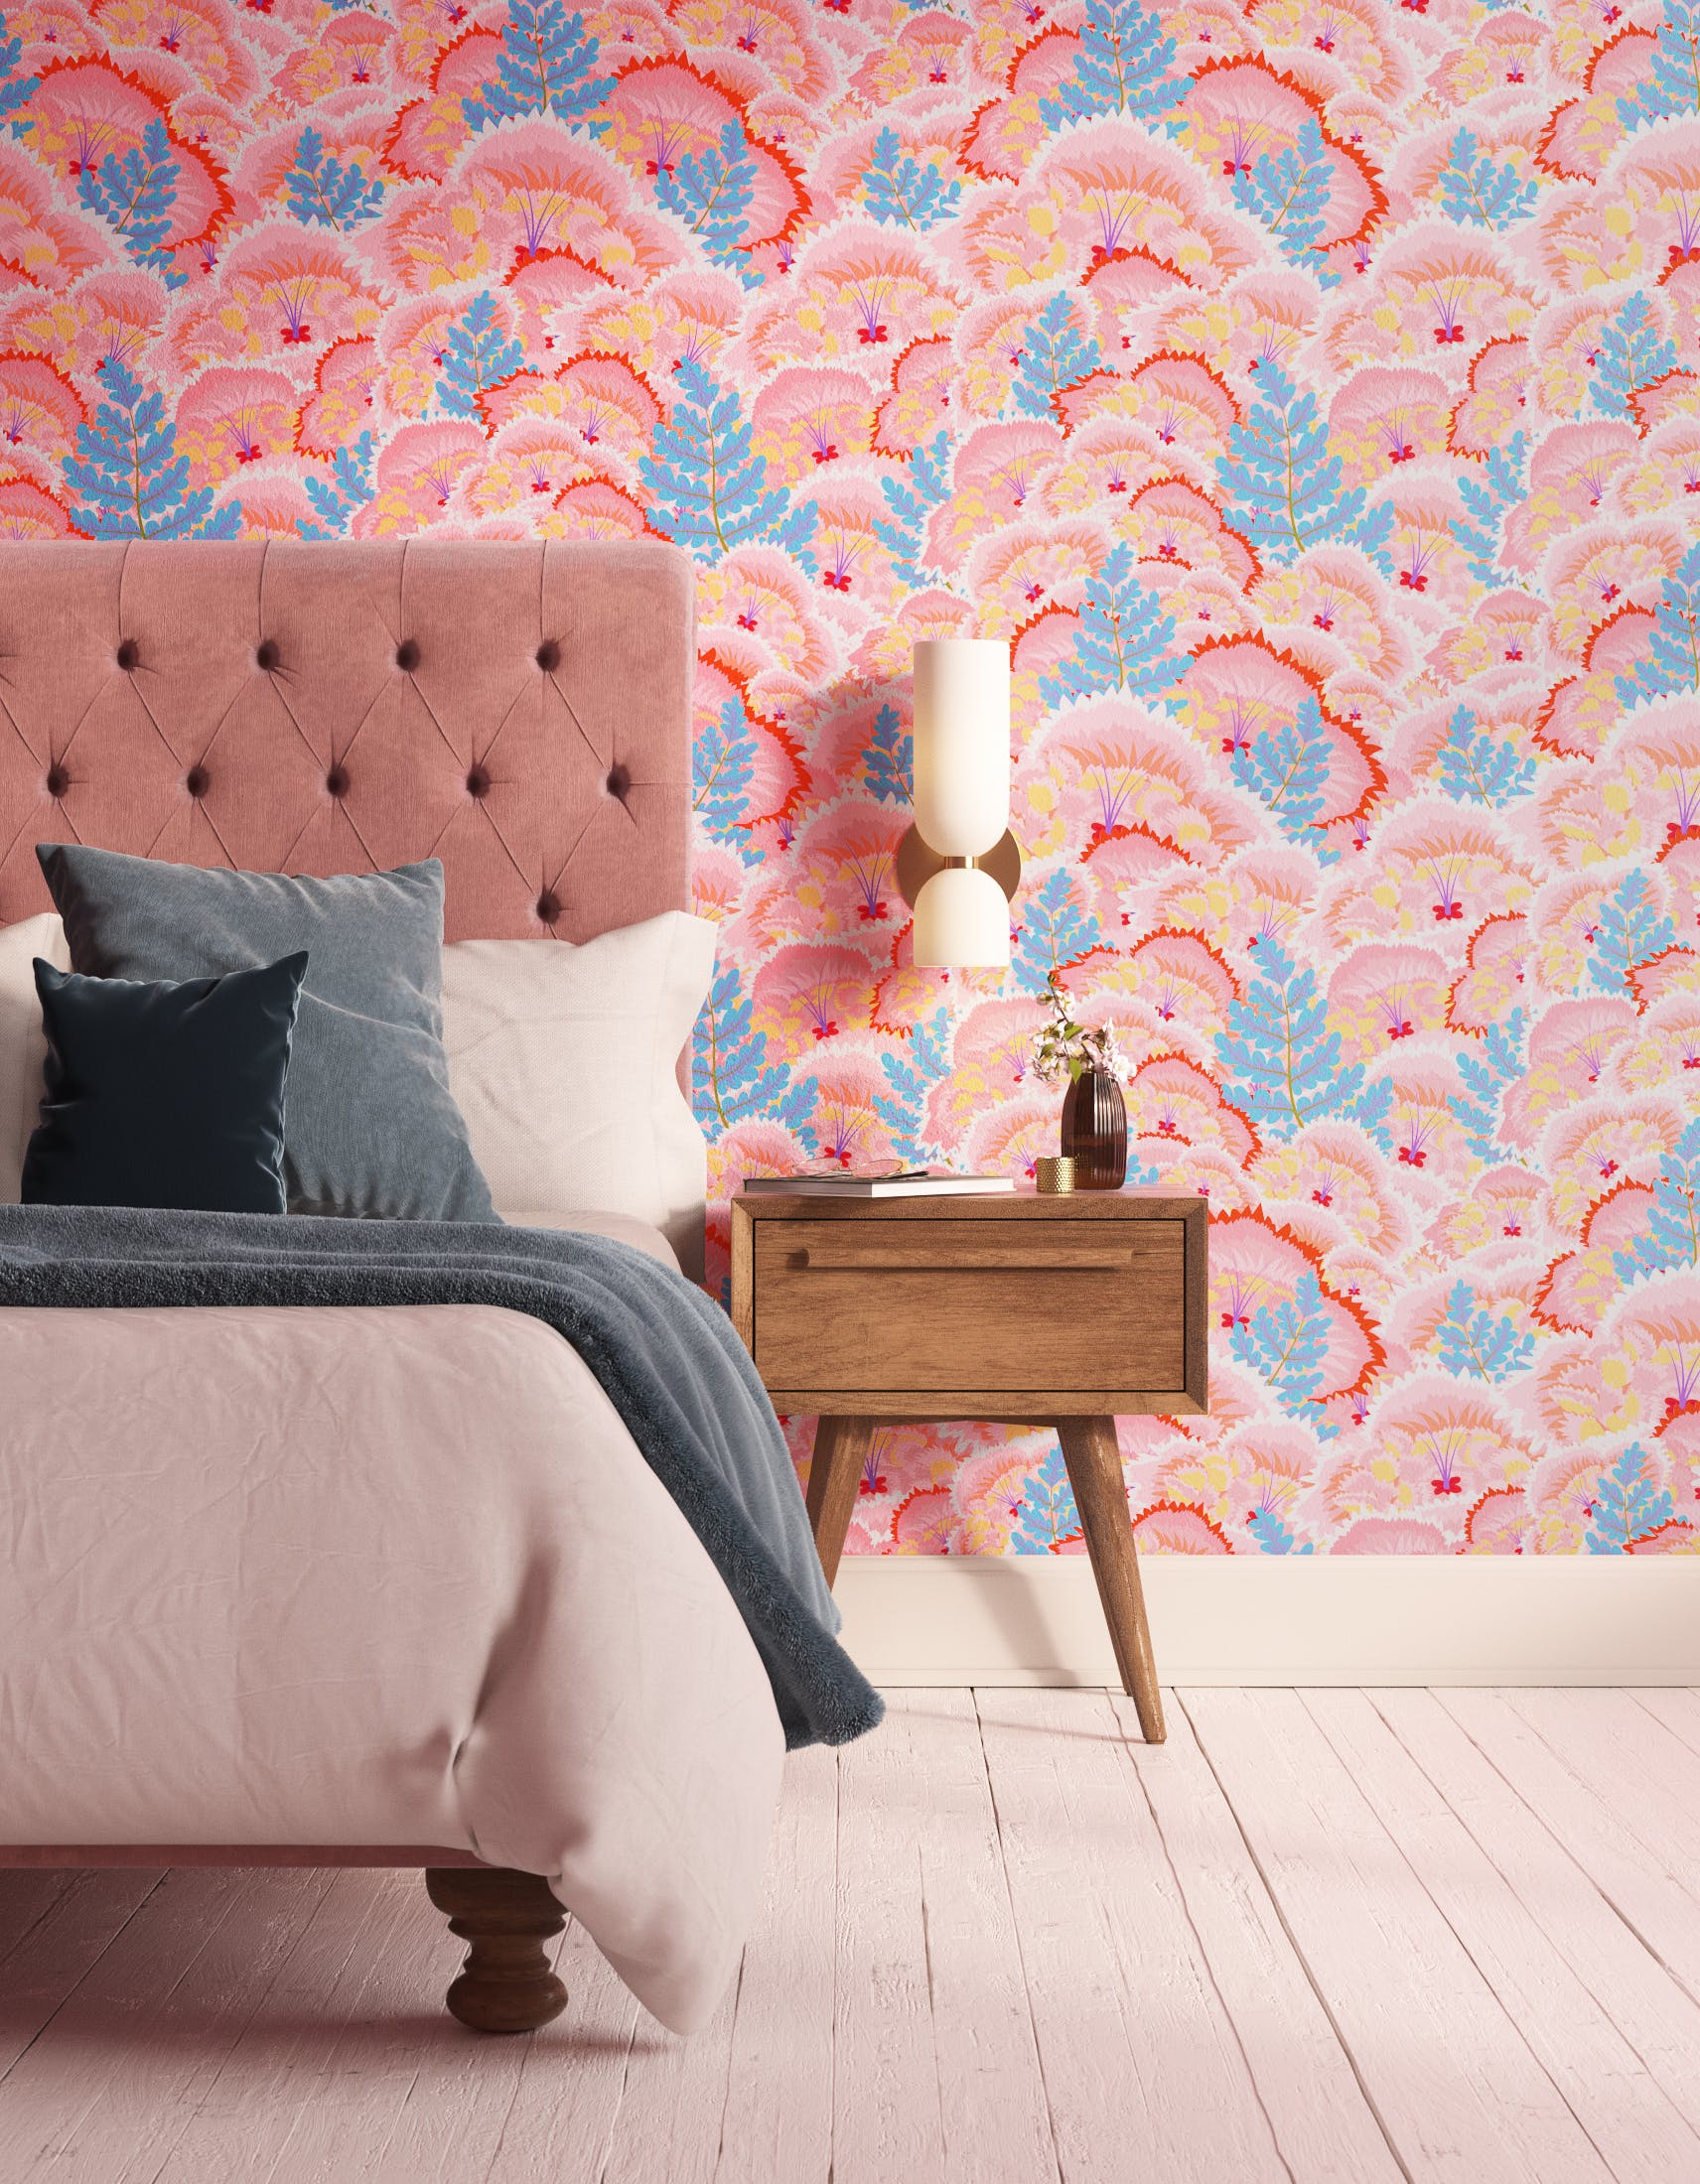 Bedroom decorated with Lick Electric Poppies 01, a pink floral wallpaper